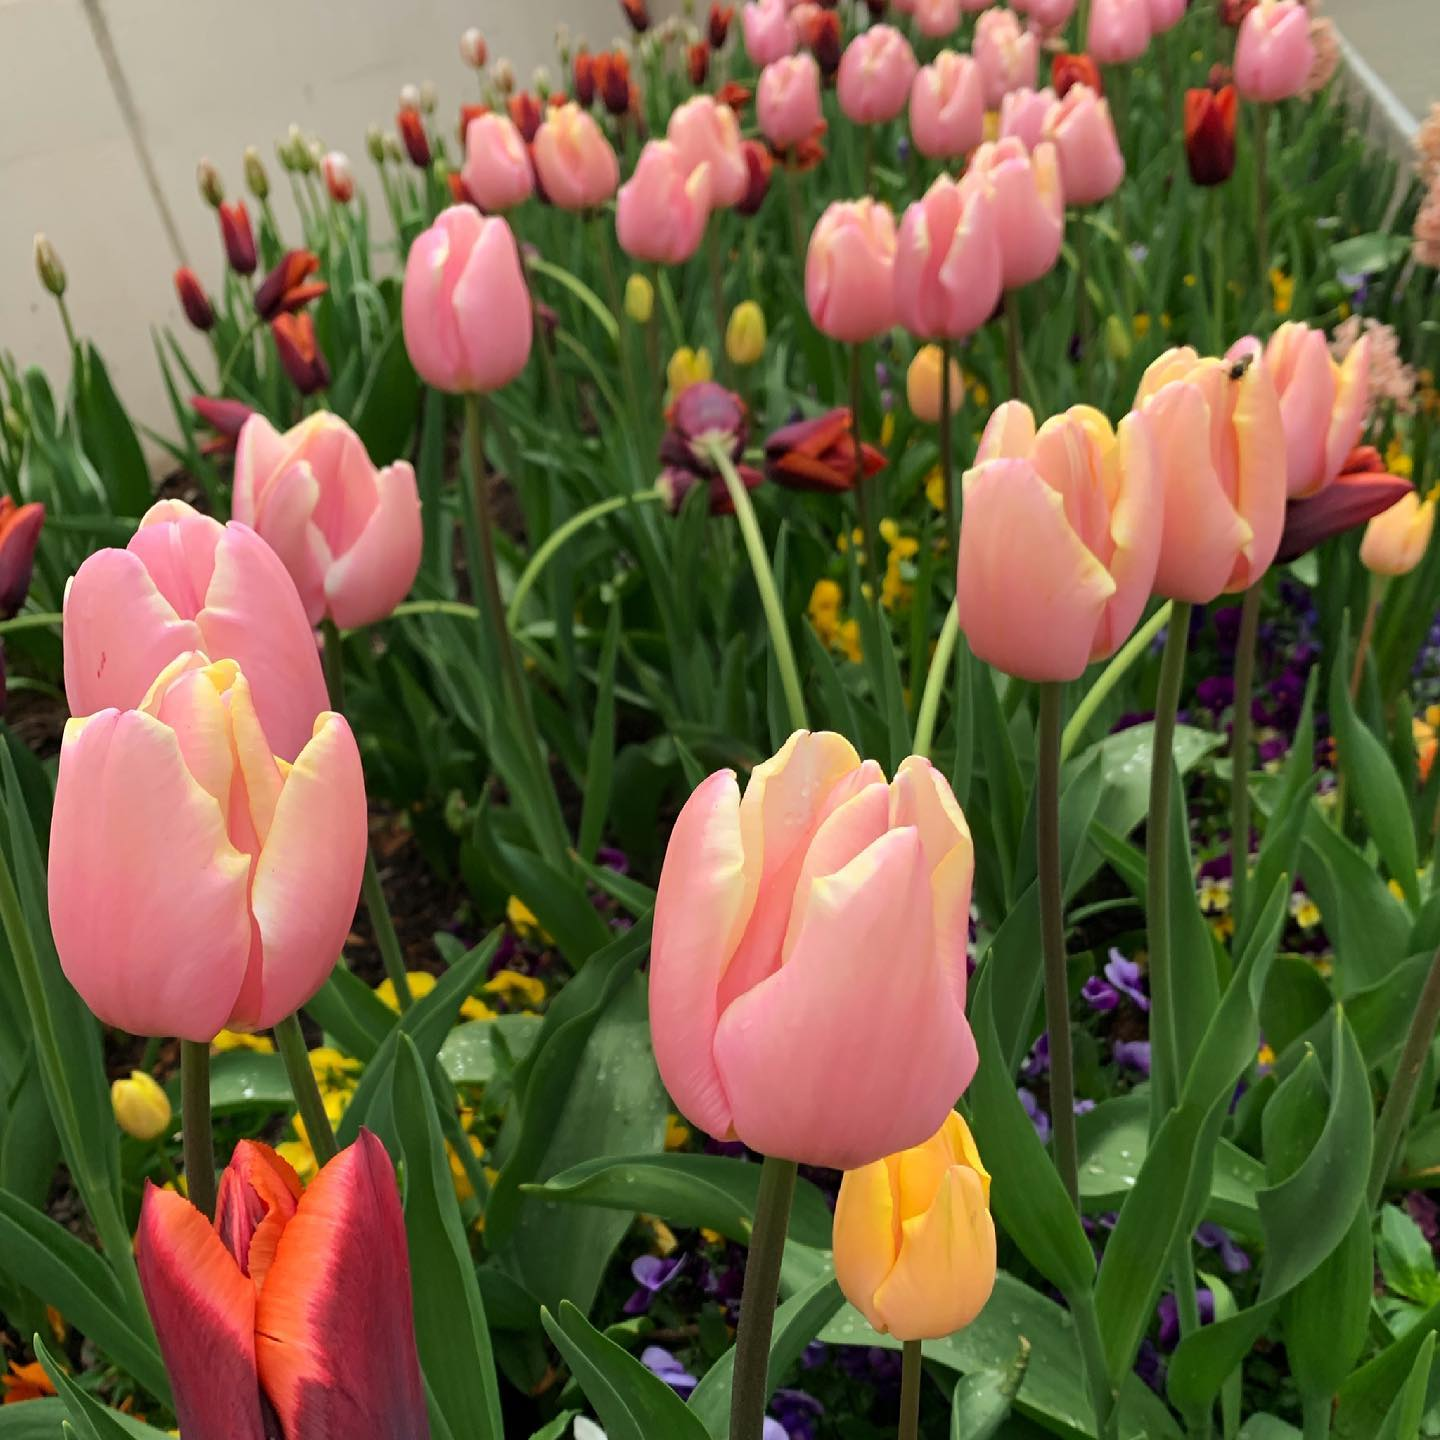 The pink is poppin' #photography #flowers #tulips #esquimalt #yyj